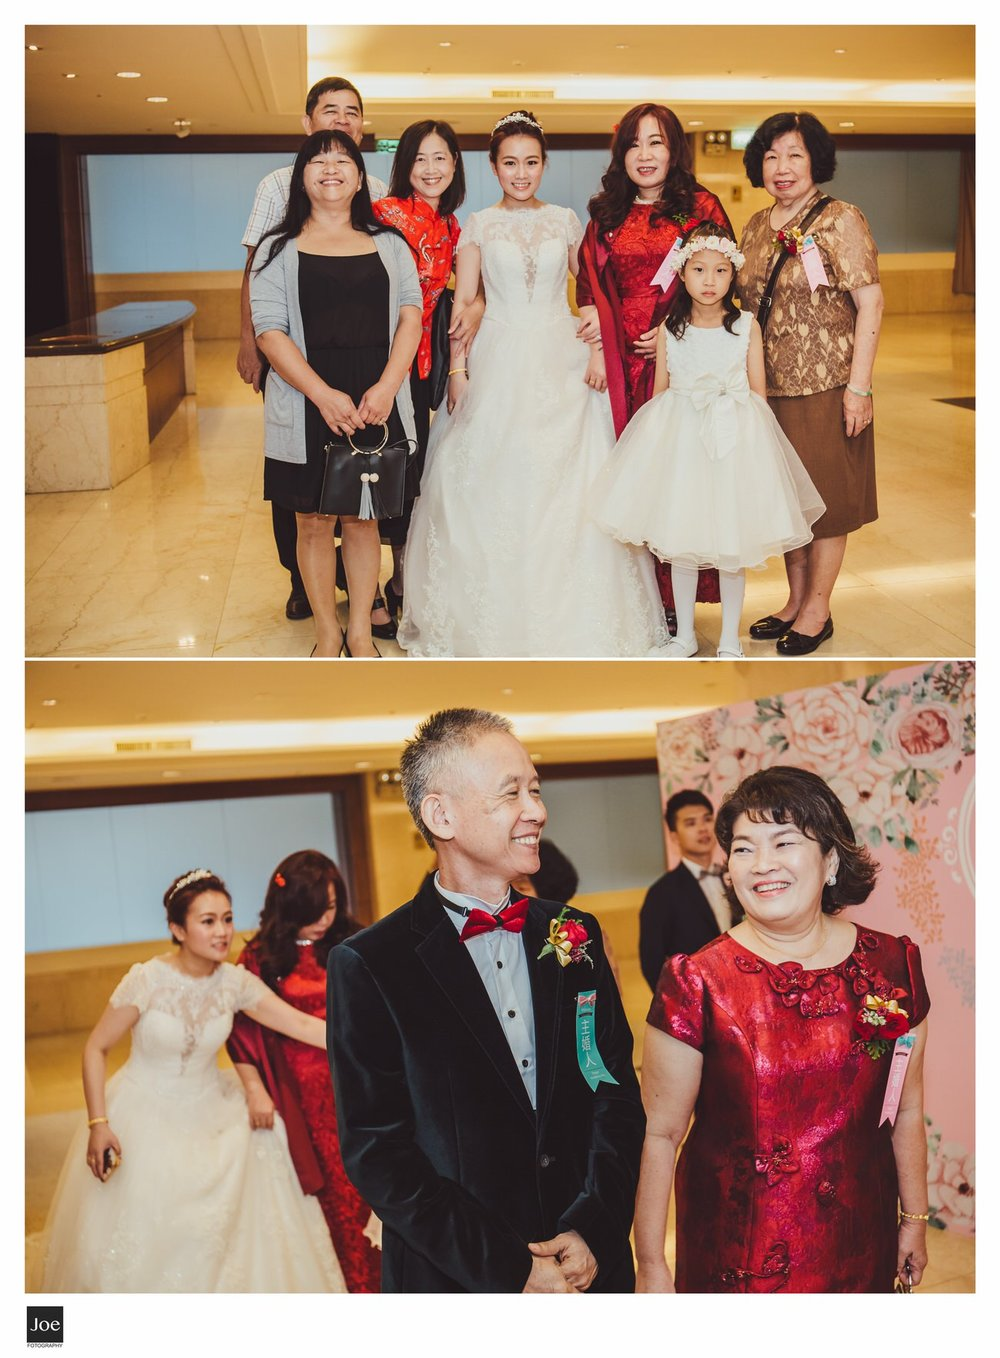 sunworld-dynasty-hotel-taipei-wedding-photo-joe-fotography-angel-jay-066.jpg